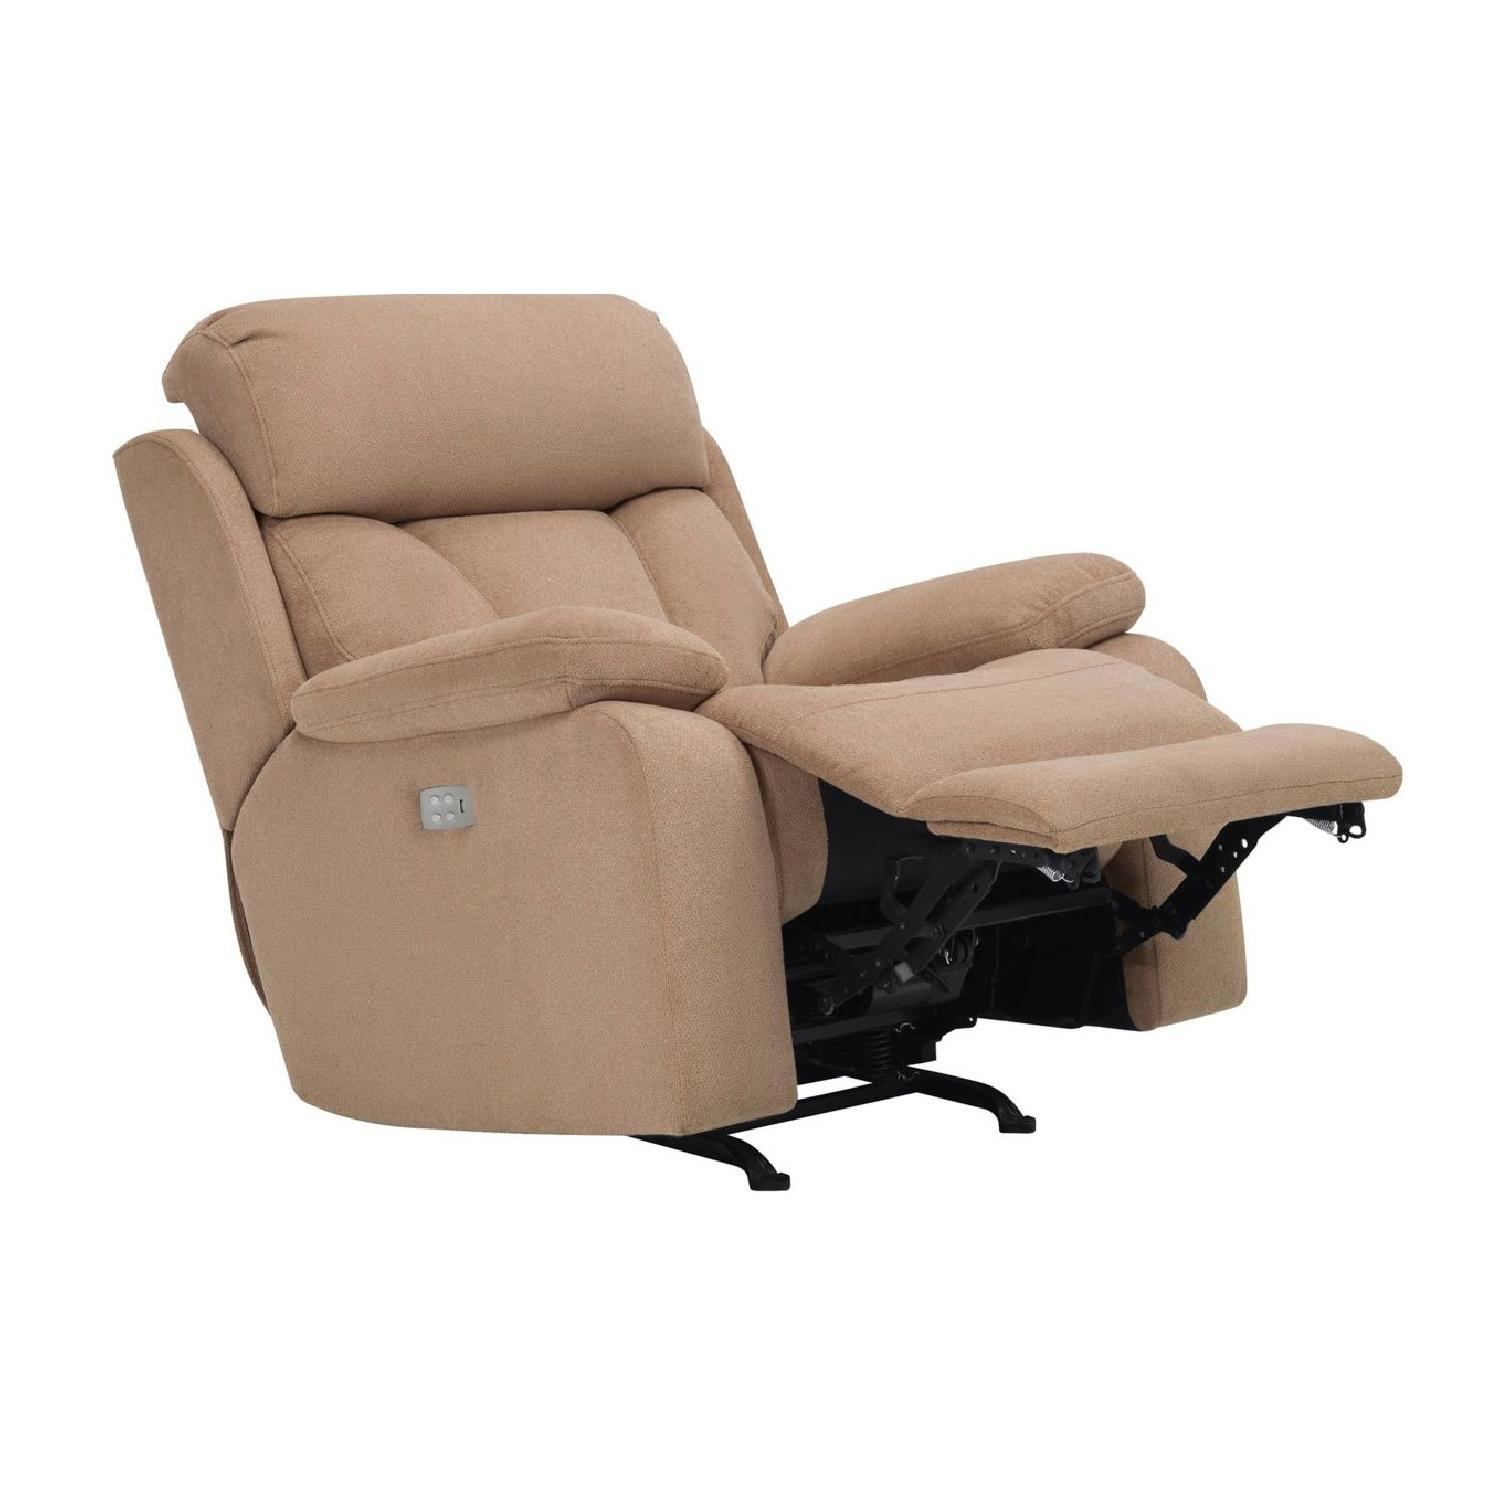 Raymour & Flanigan Connell Power Rocker Chair - image-0